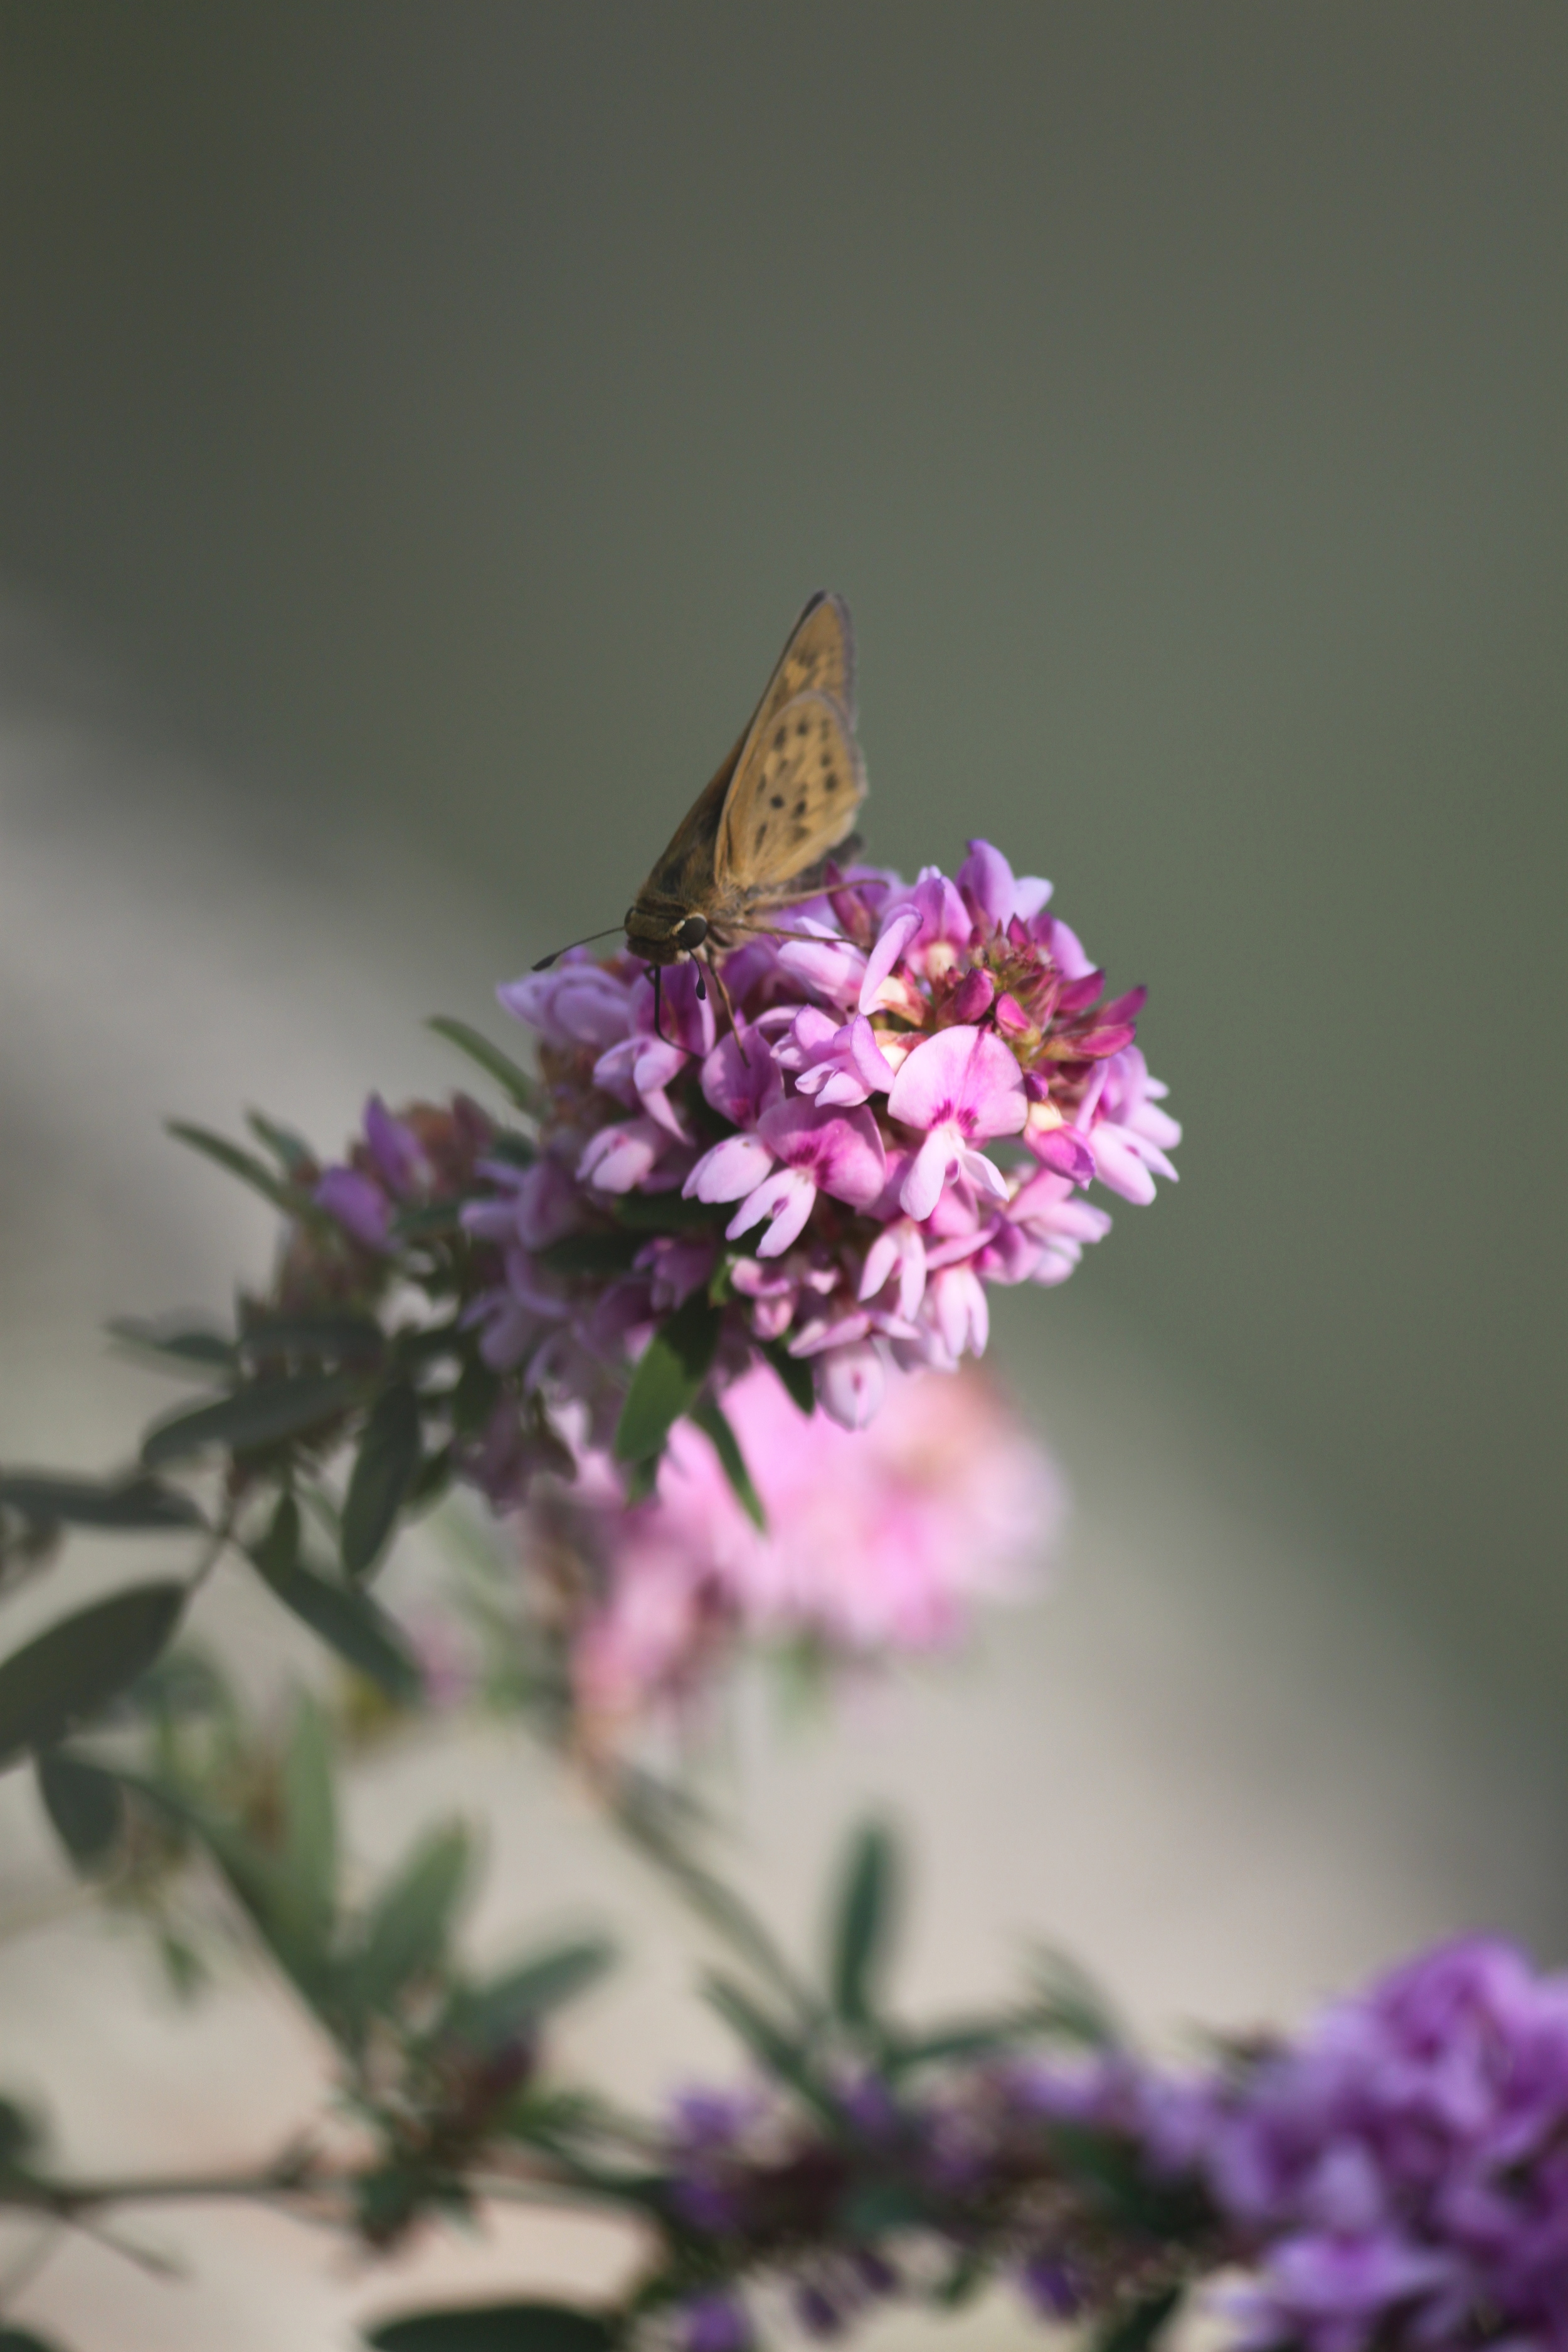 Business as usual for a butterfly in August